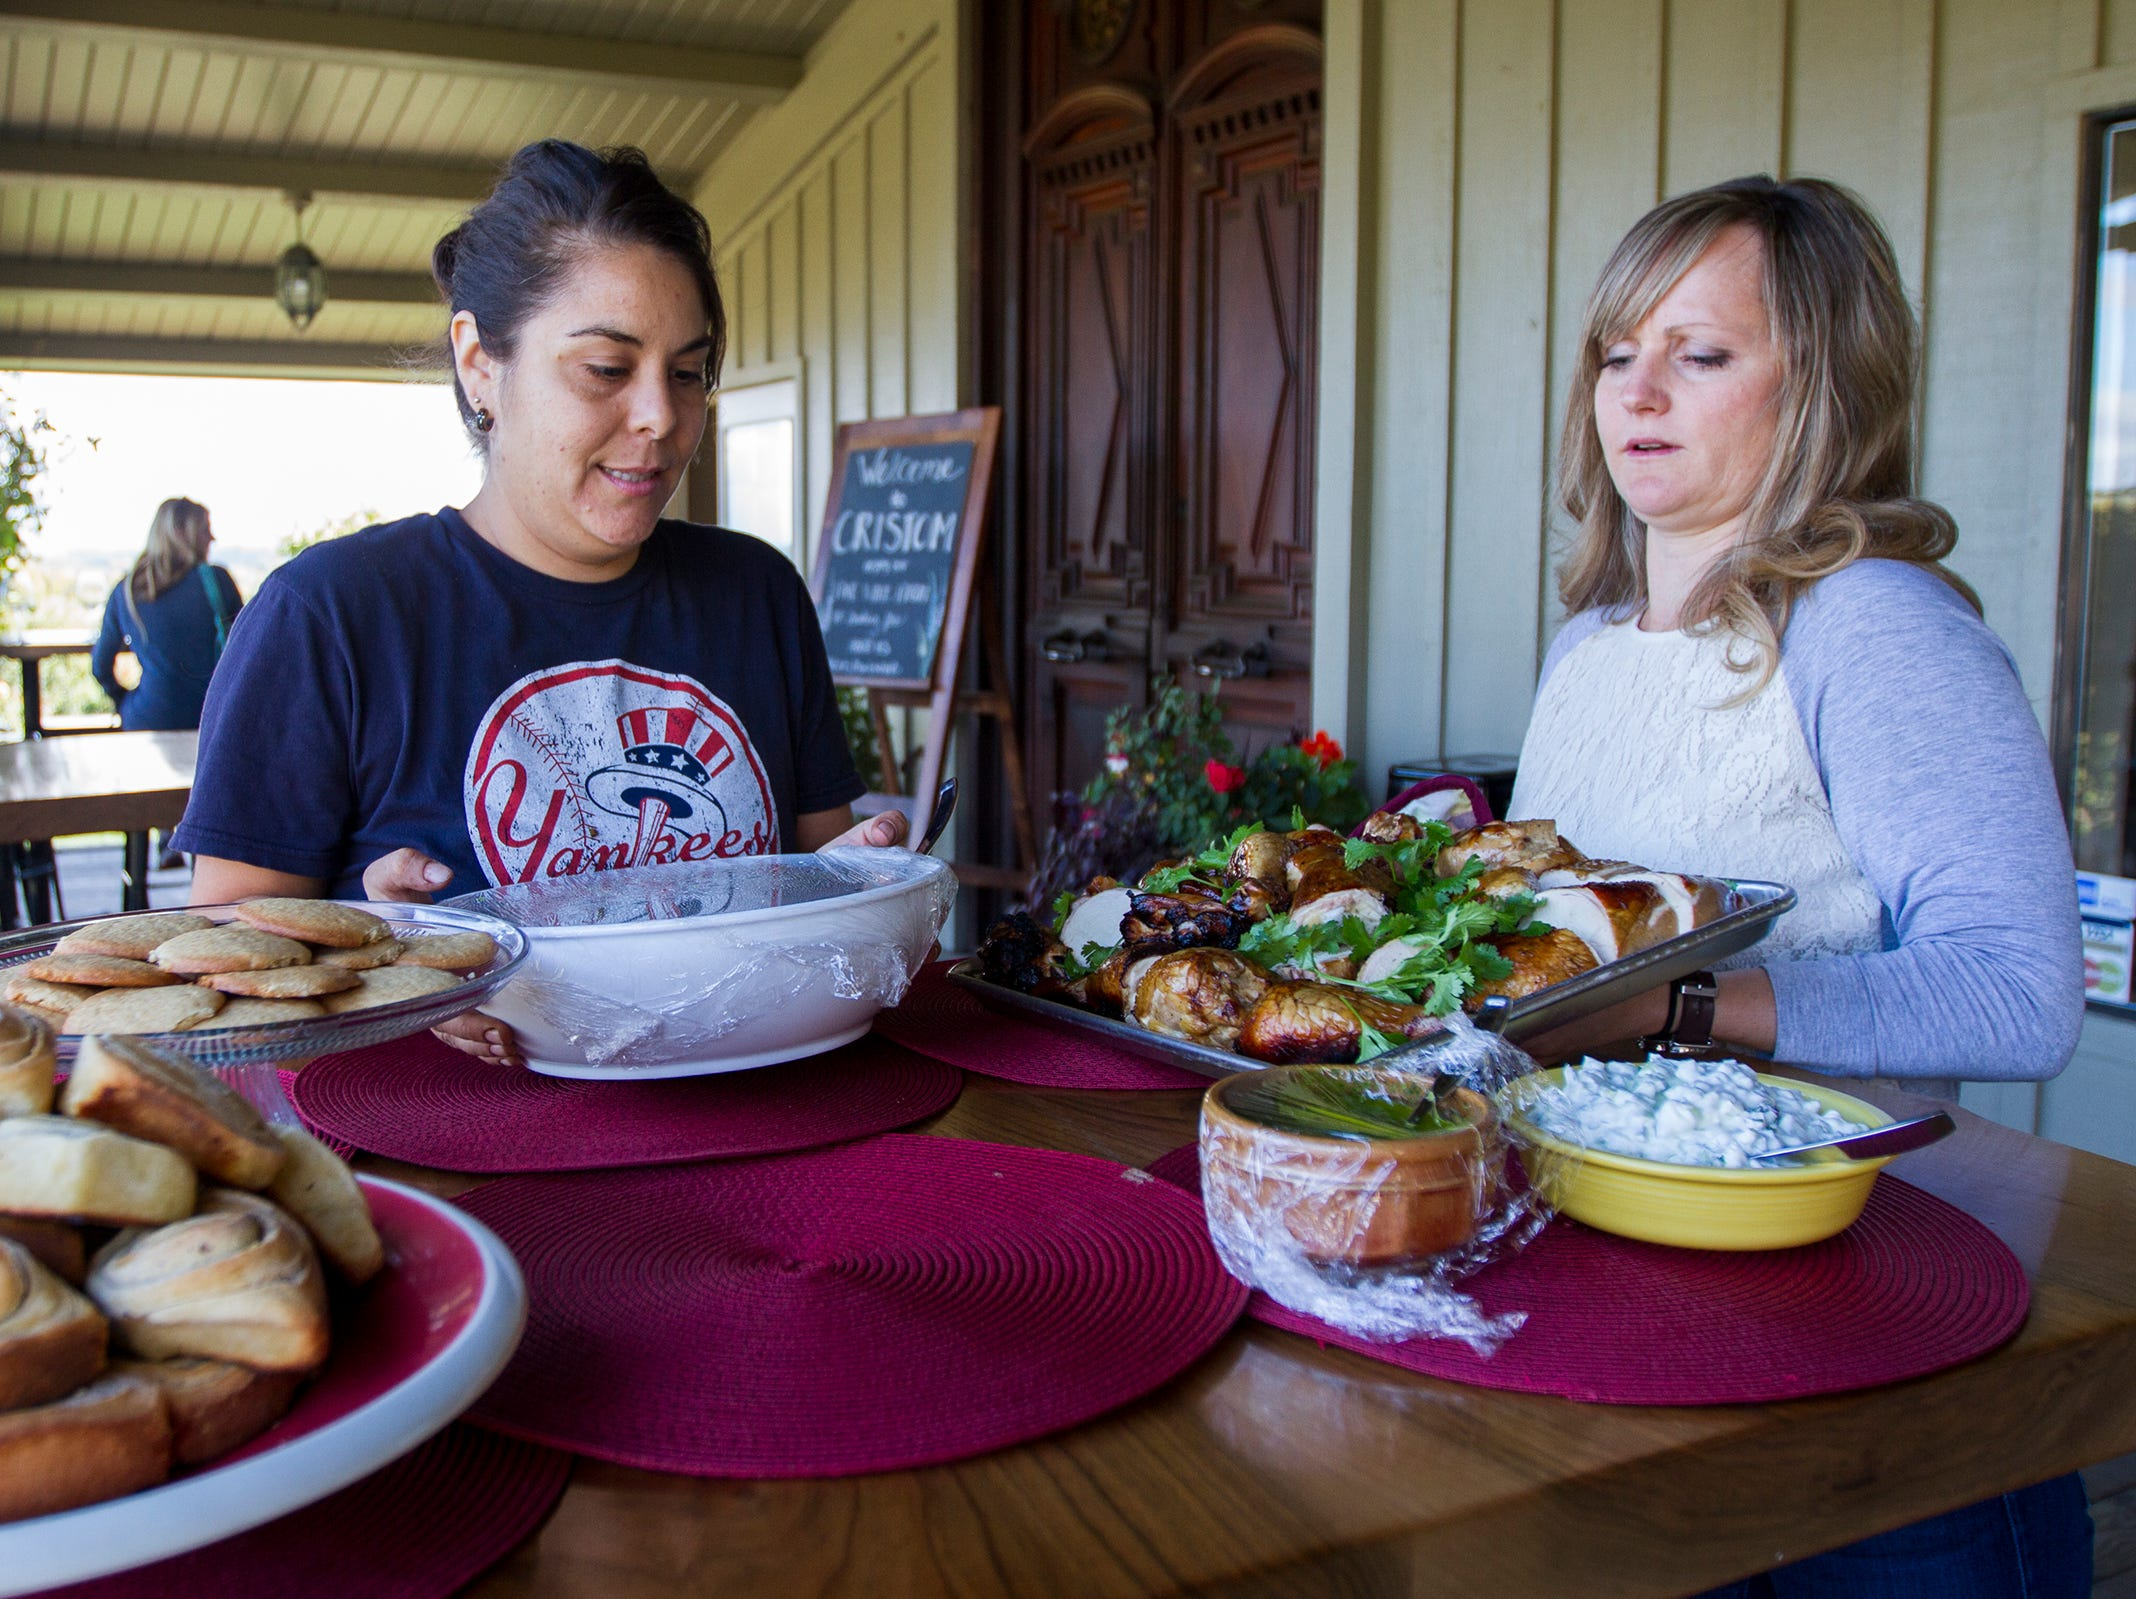 Cristom Winery harvest workers help set up a table of food on Tuesday, Oct. 2, 2018. During harvest season Willamette Valley wineries will sometimes hire a chef to cook for a crew working 12-hour days.